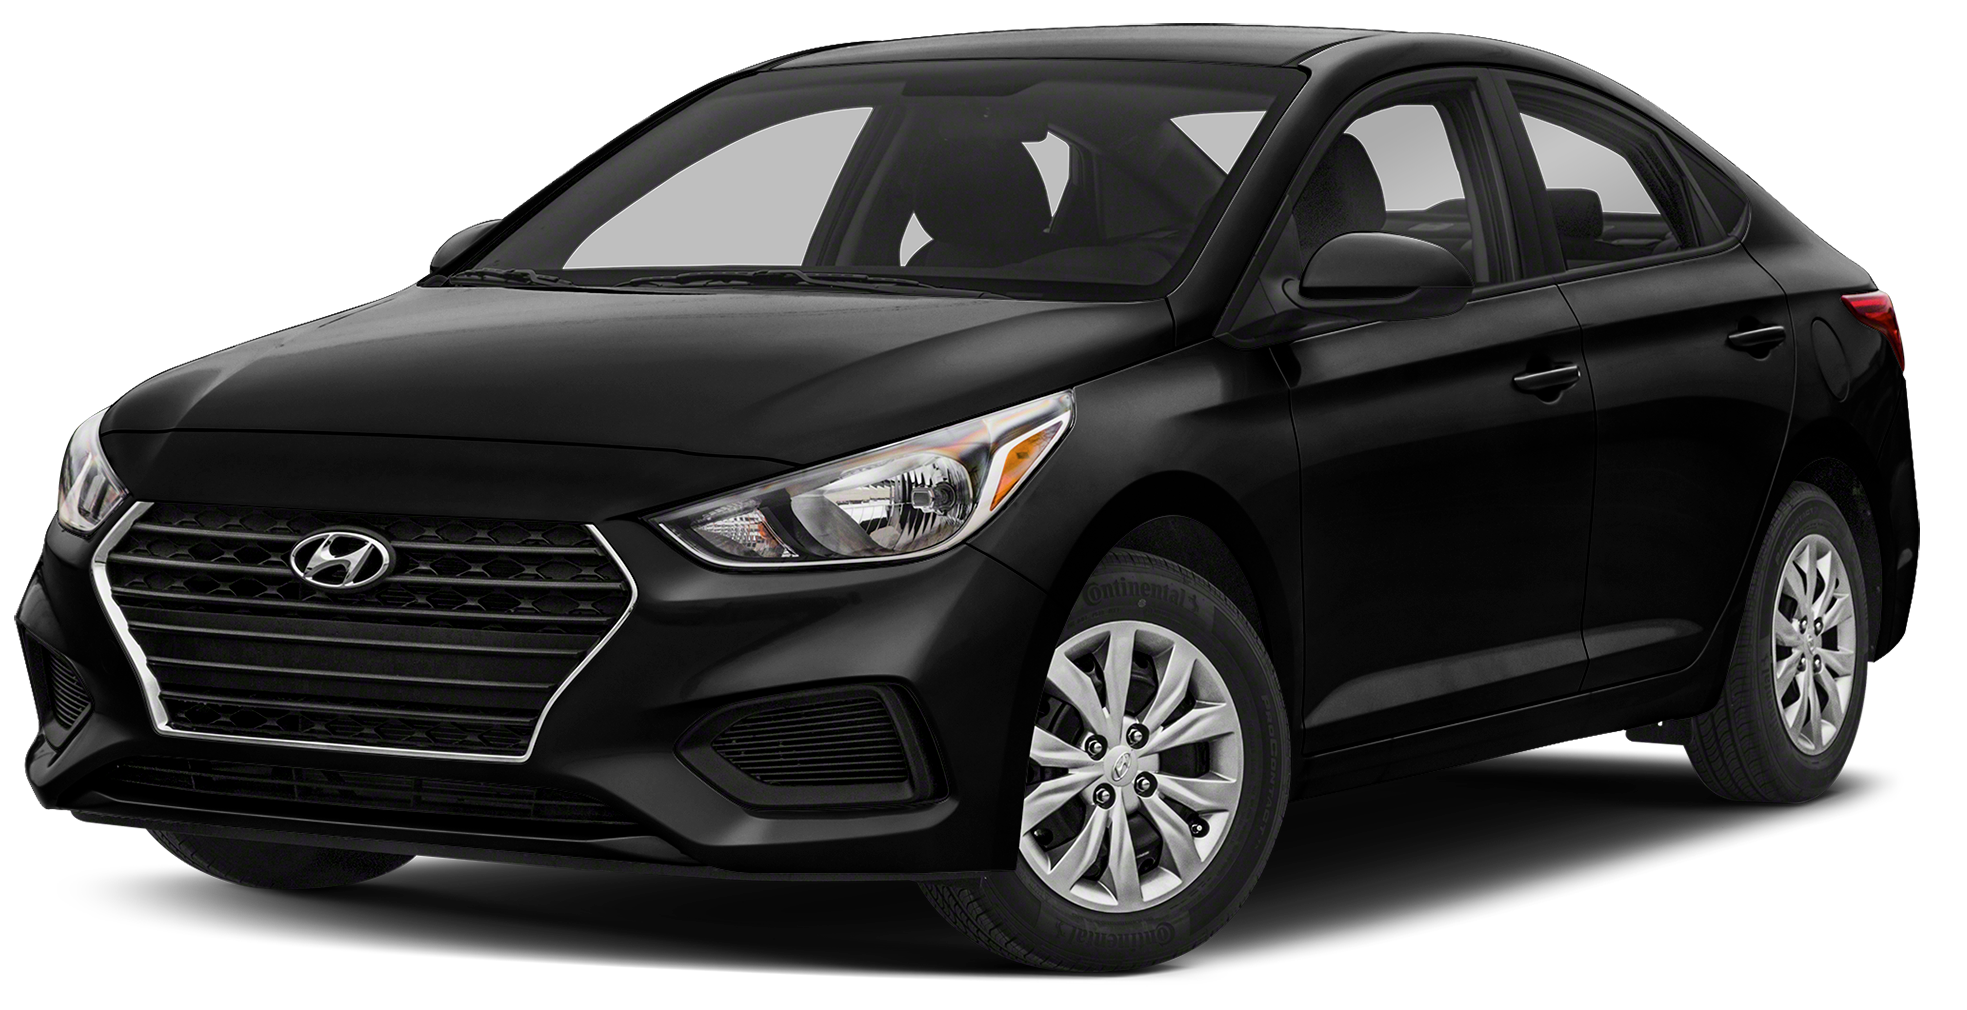 Are You Trying To Decide Between A Hyundai Sedan Or SUV? If So, Let The  Team At Balise Hyundai Of Cape Cod Help You Decide!